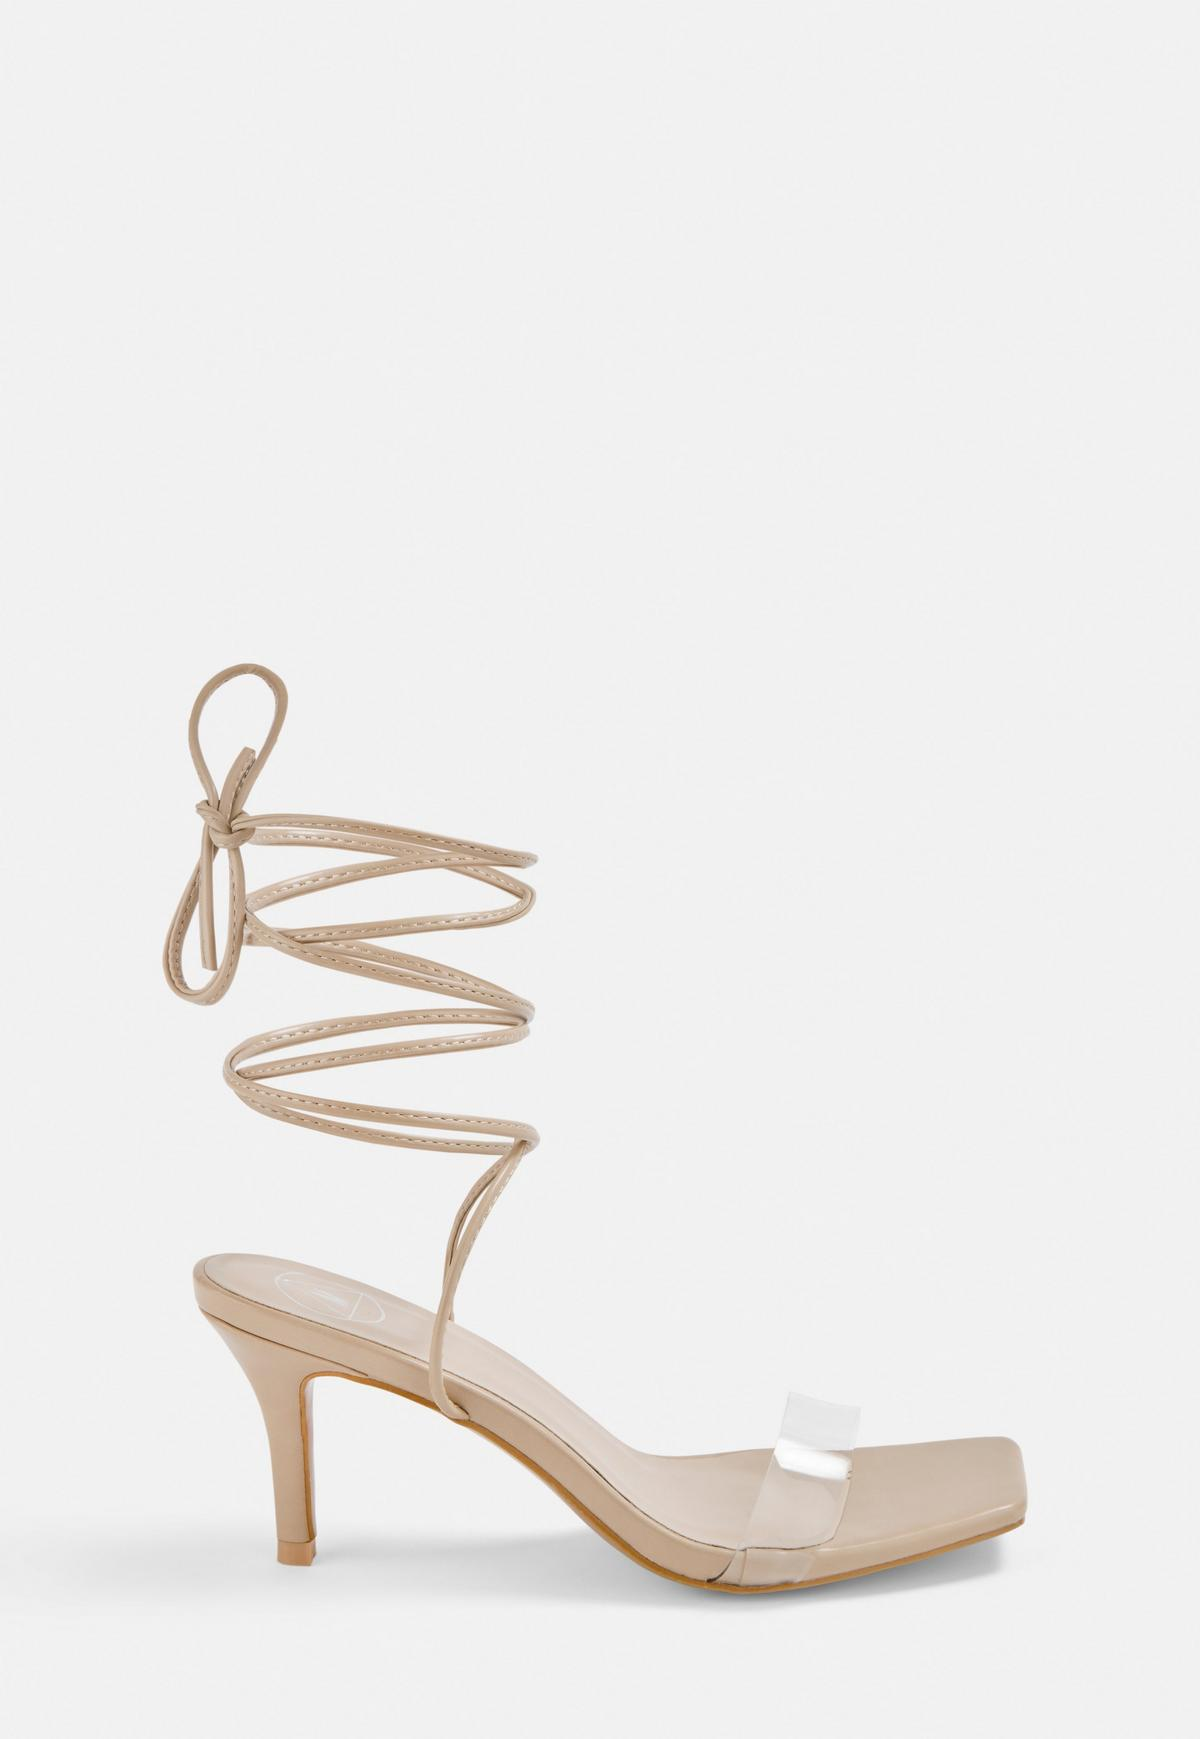 Nude Strappy Stiletto Low Heels